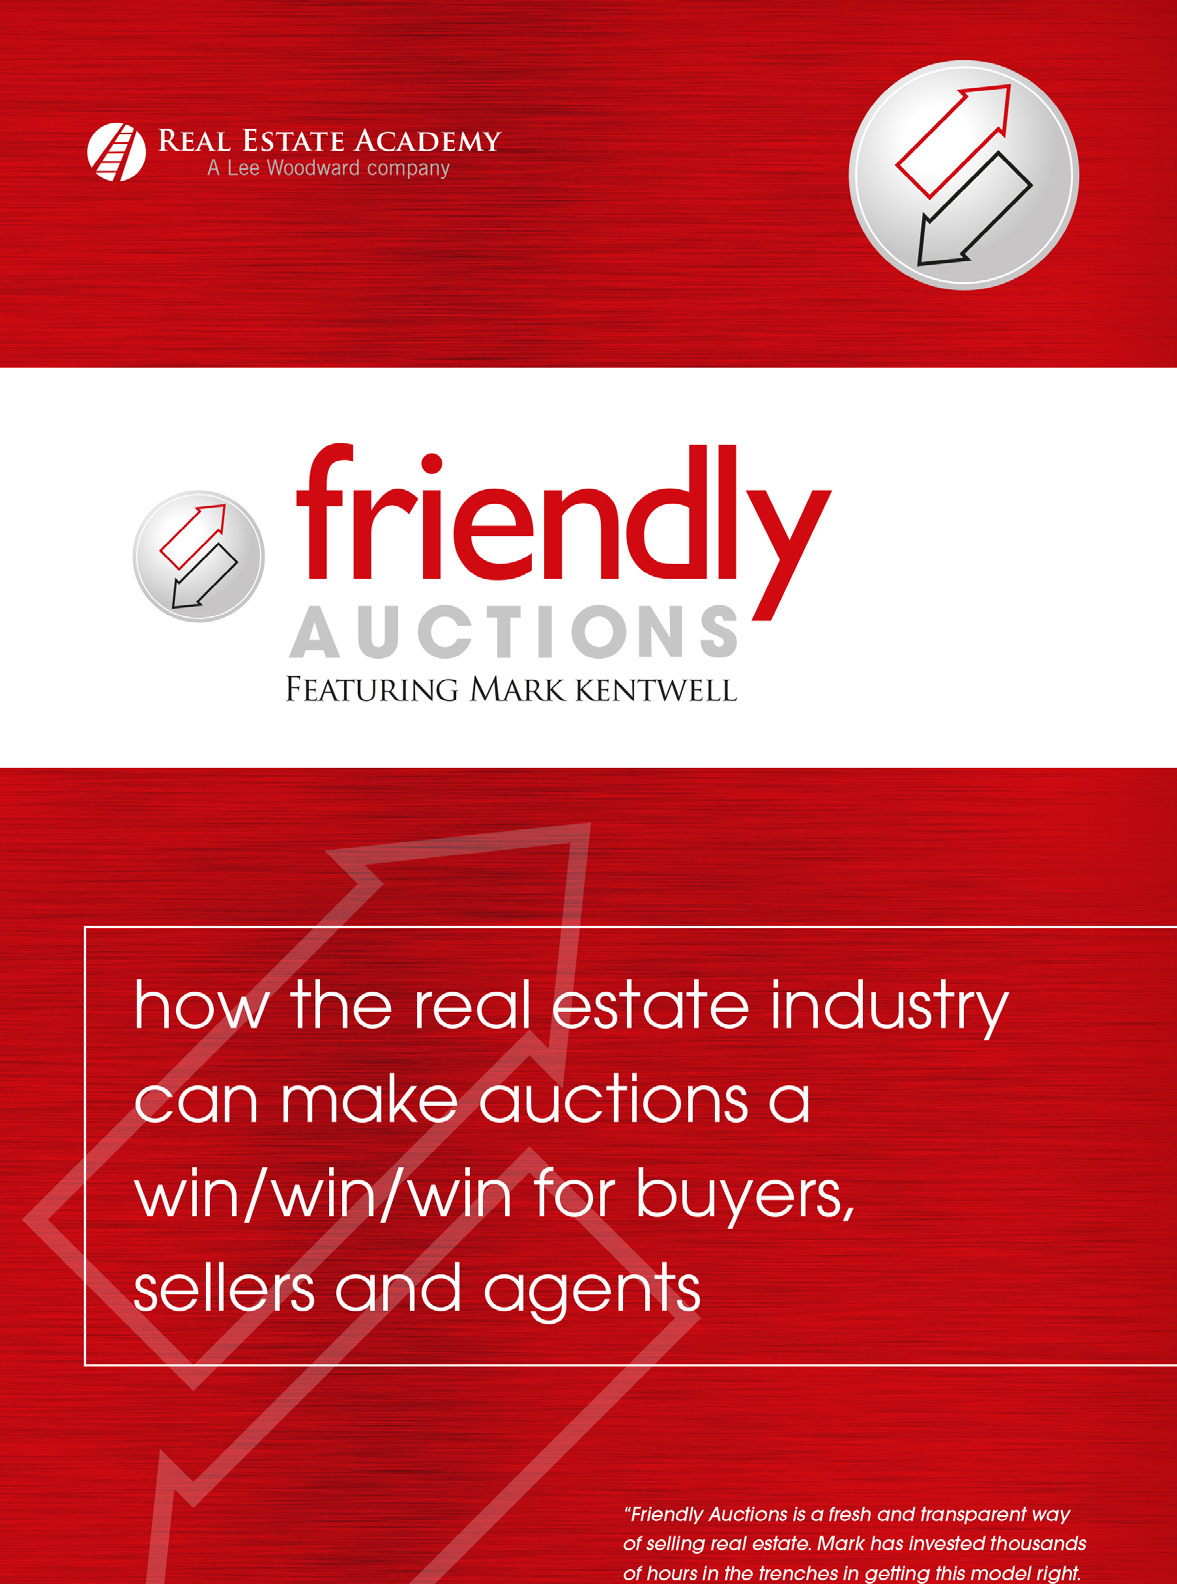 Friendly Auctions – how the real estate industry can make auctions a win/win/win for buyers, sellers and agents by Mark Kentwell